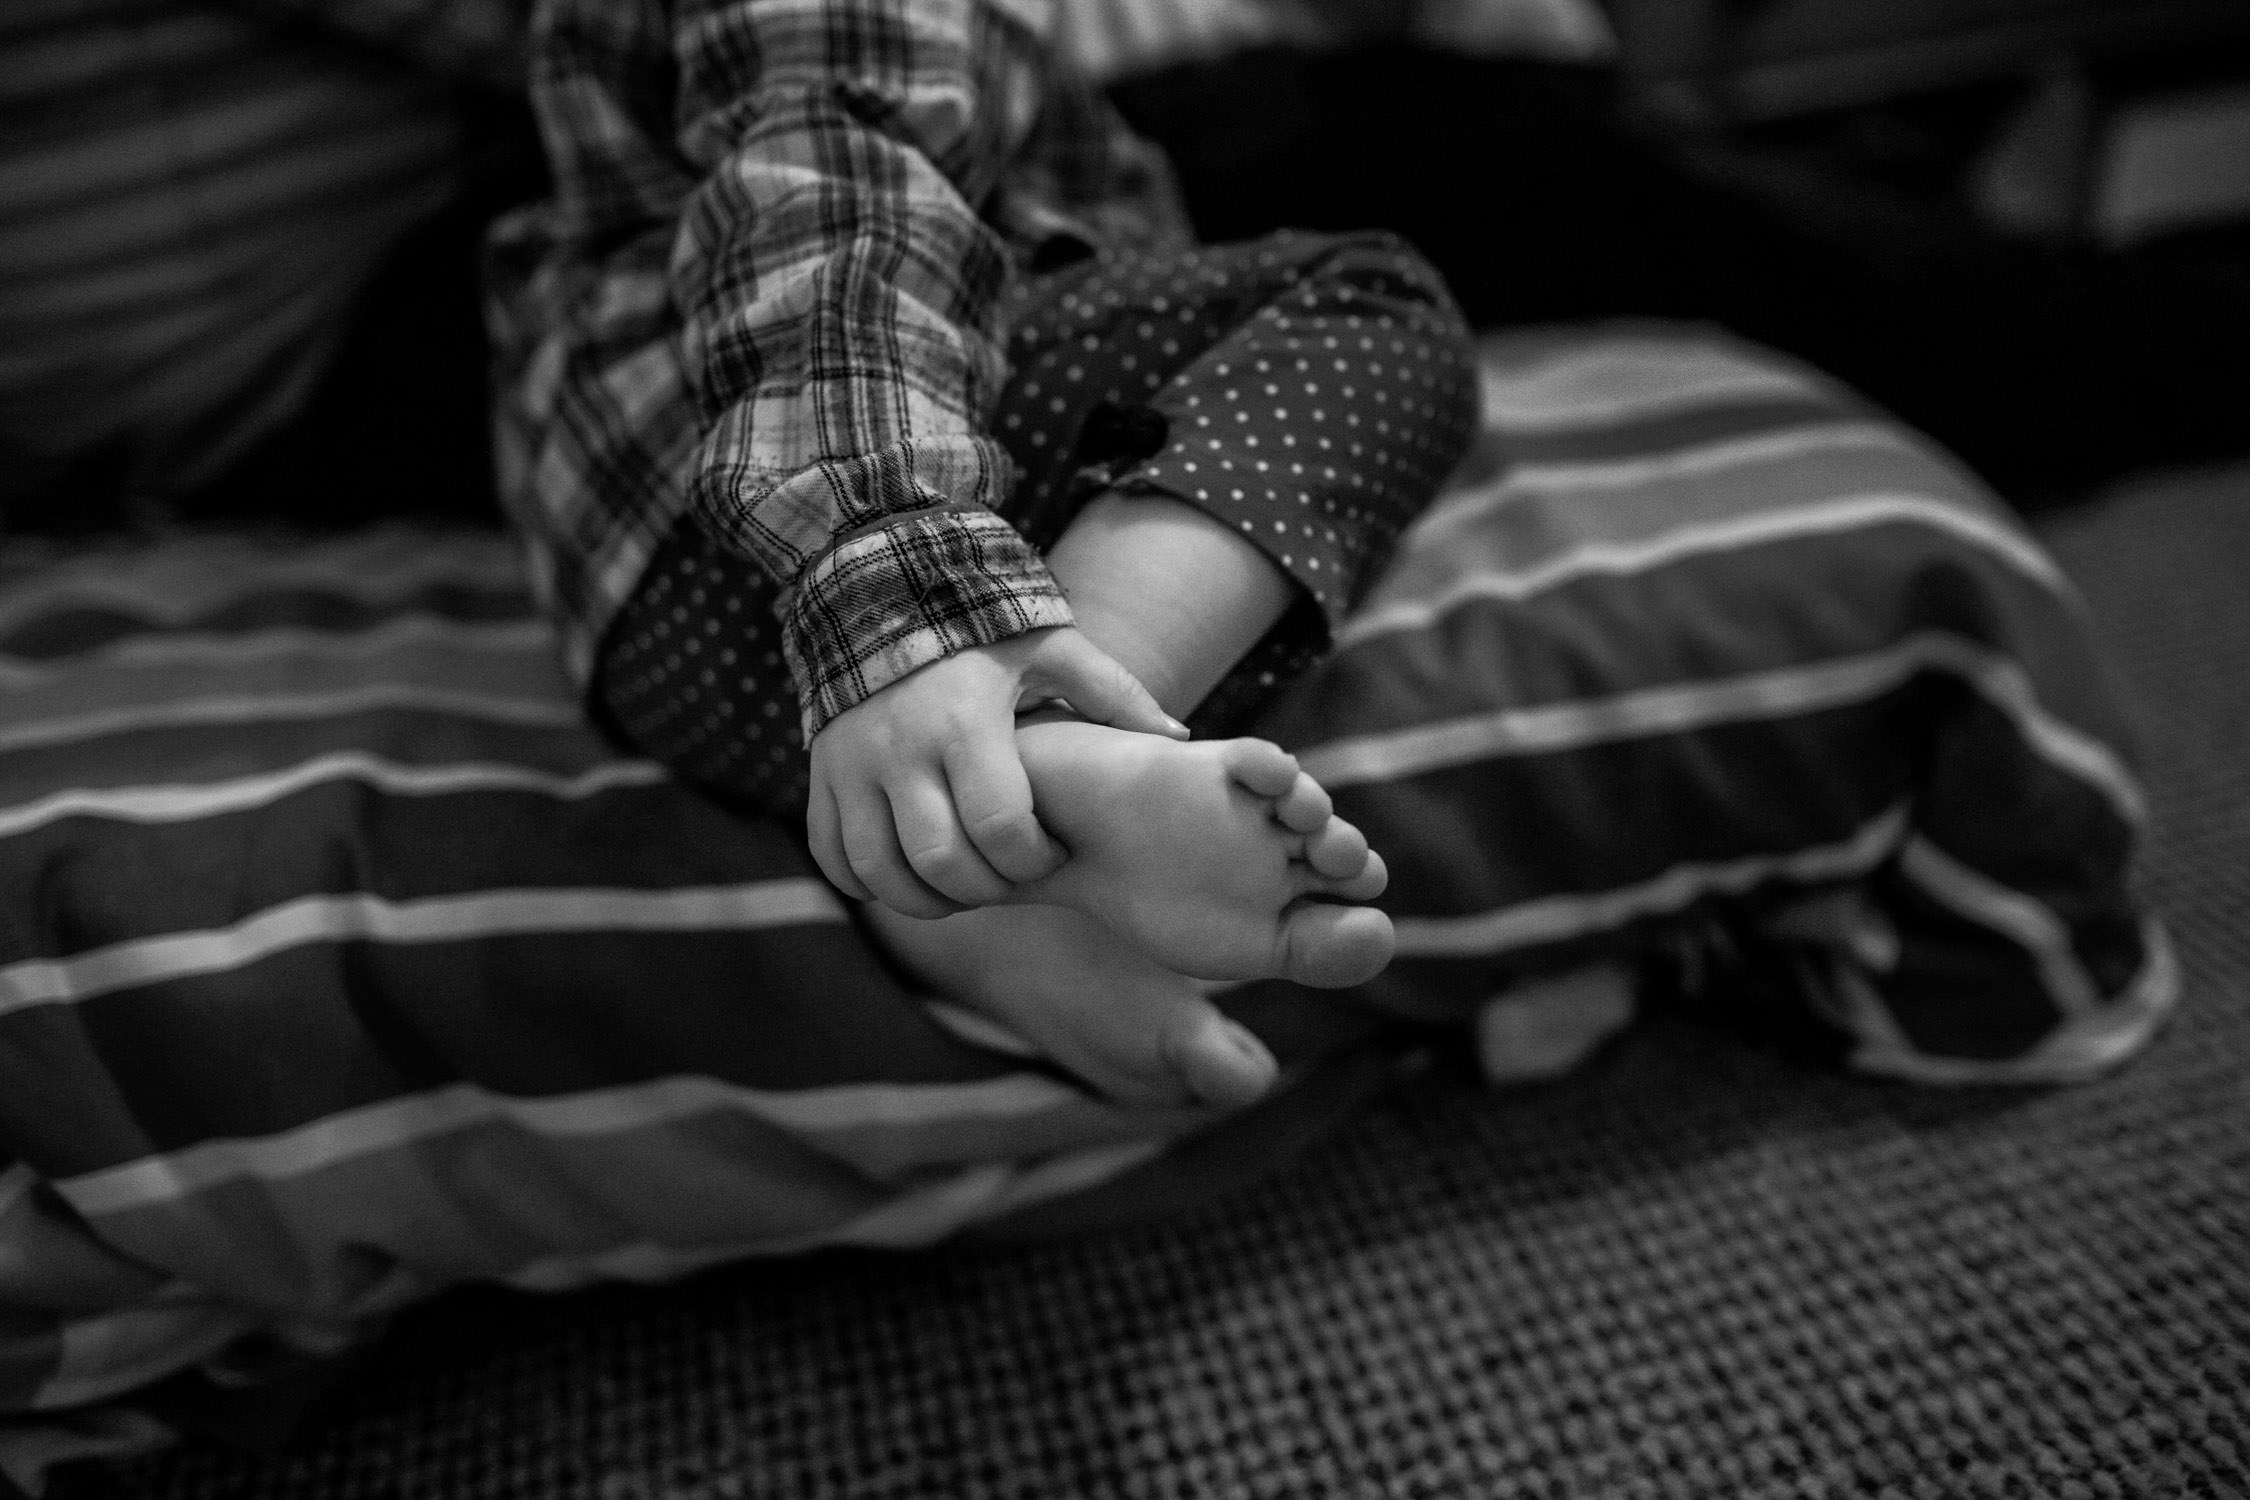 little girl's hand on her small foot